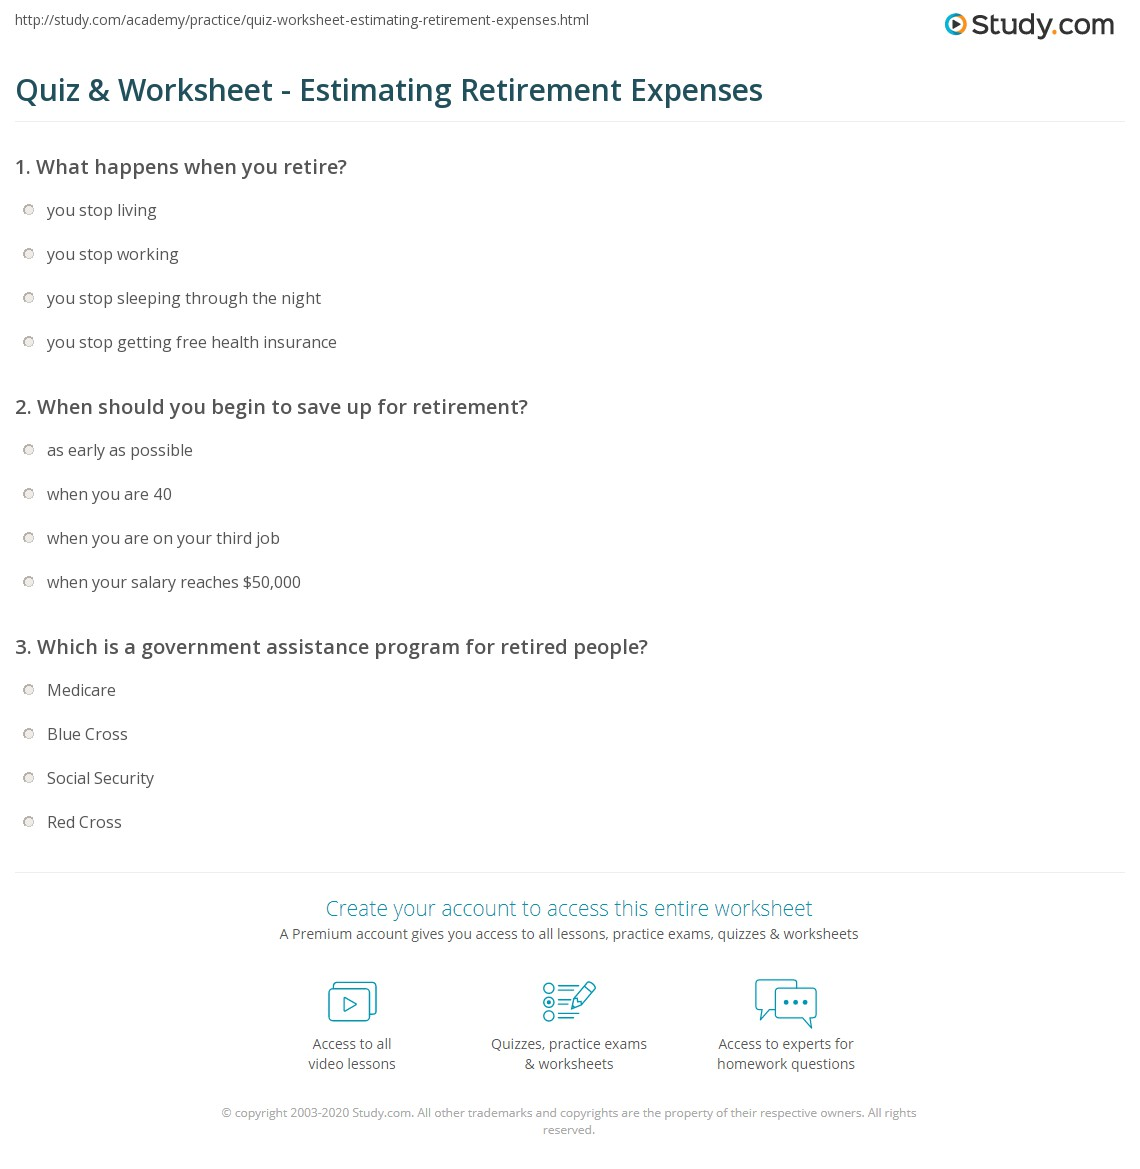 Worksheet Retirement Expenses Worksheet quiz worksheet estimating retirement expenses study com print saving for costs worksheet